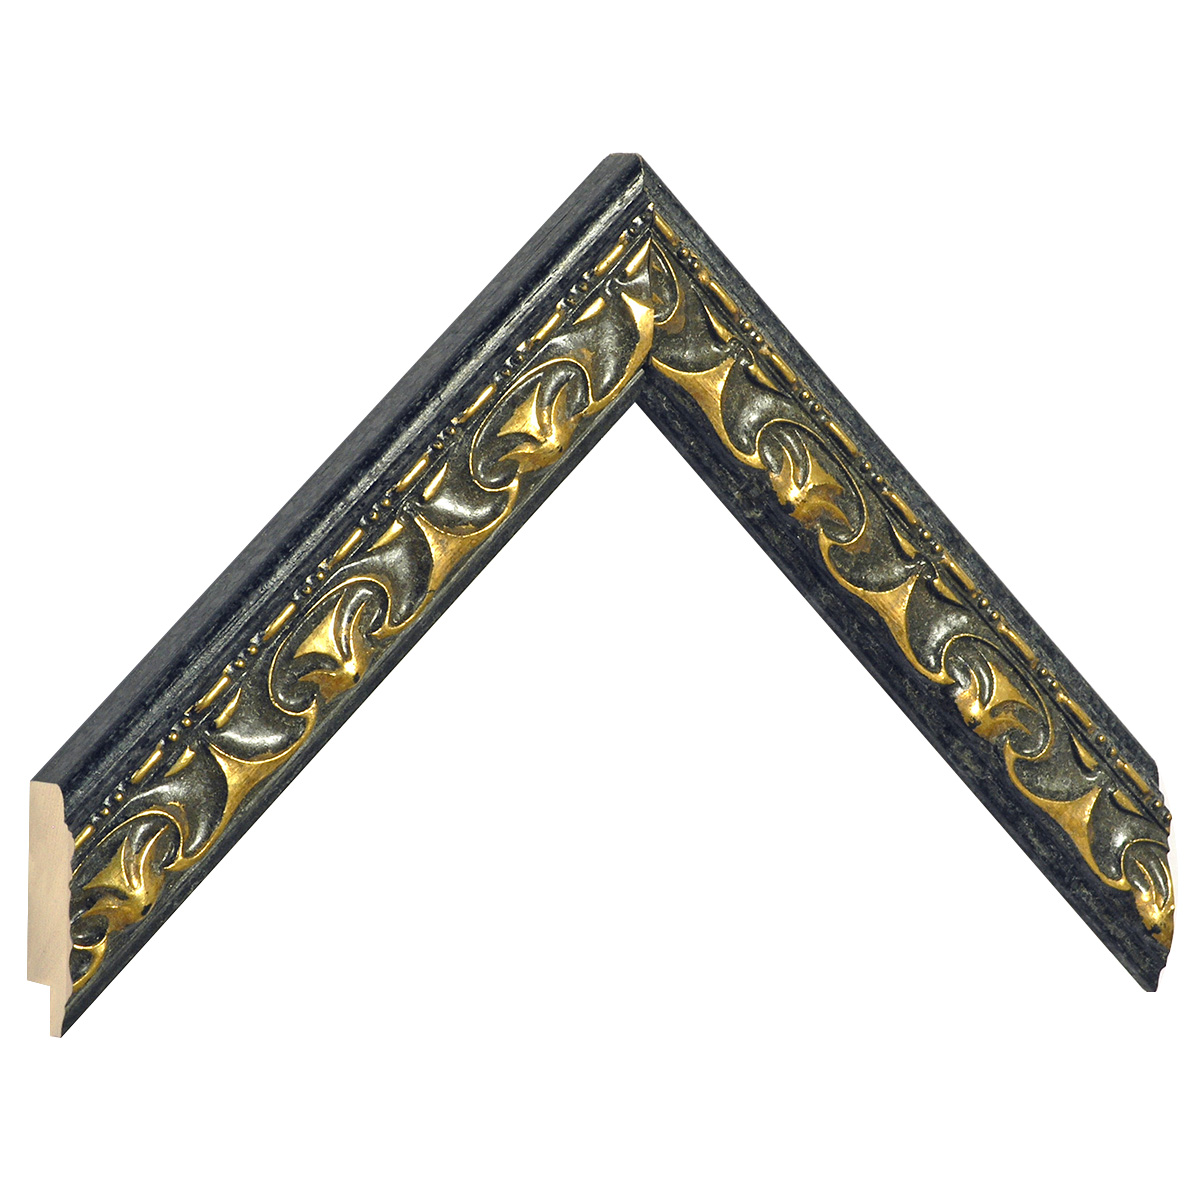 Moulding ayous black with golden relief decorations